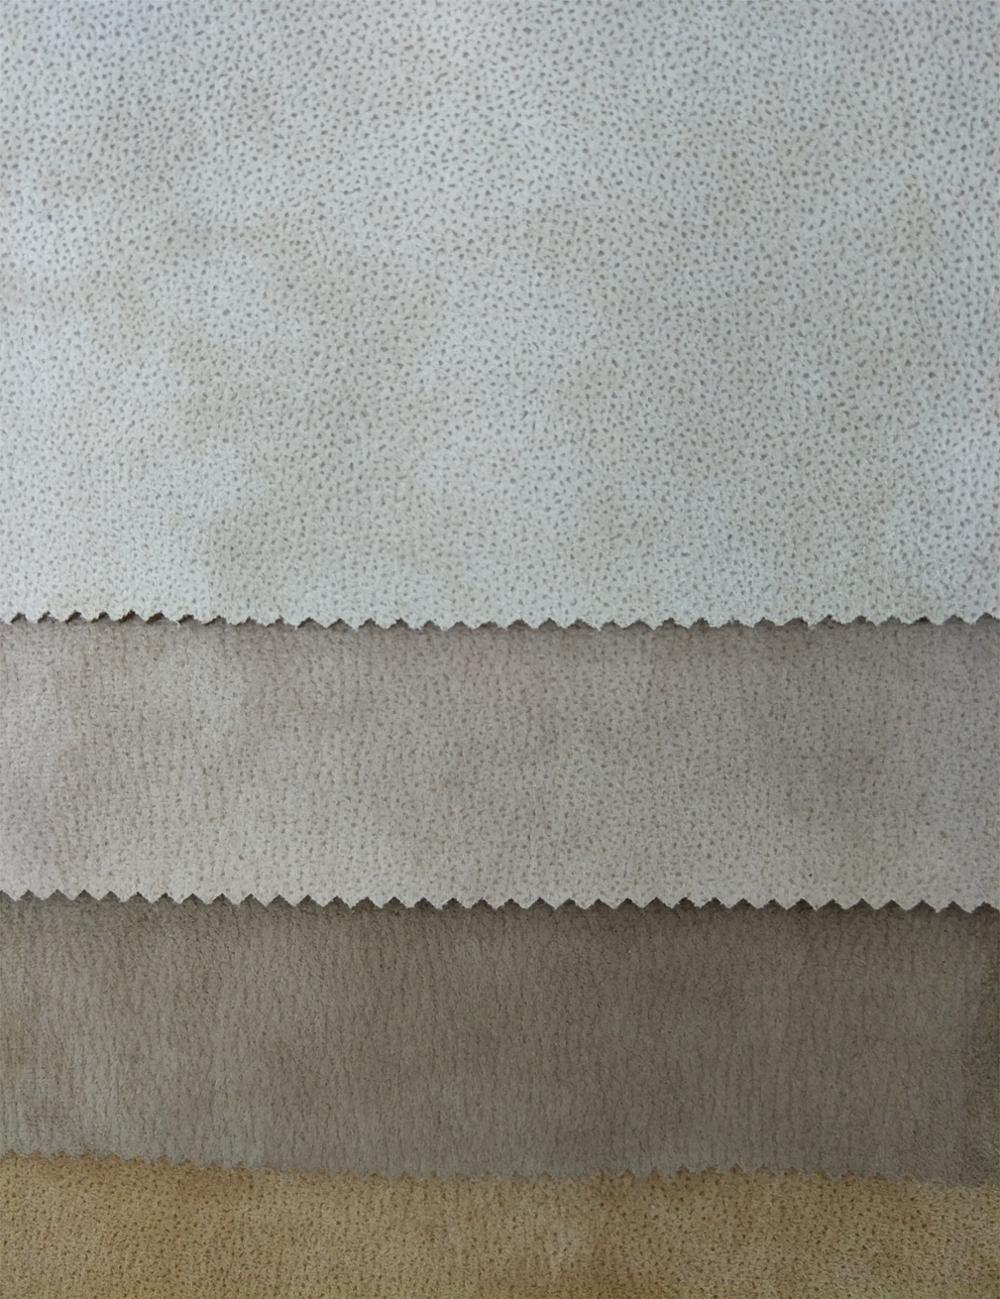 100% Polyester Fabric Weft Suede Upholstery - Buy Leather Fabric Material Fabric Sofa,Furniture Fabric Sofa,Bangladesh Sofa Fabric Product On Alibaba.com